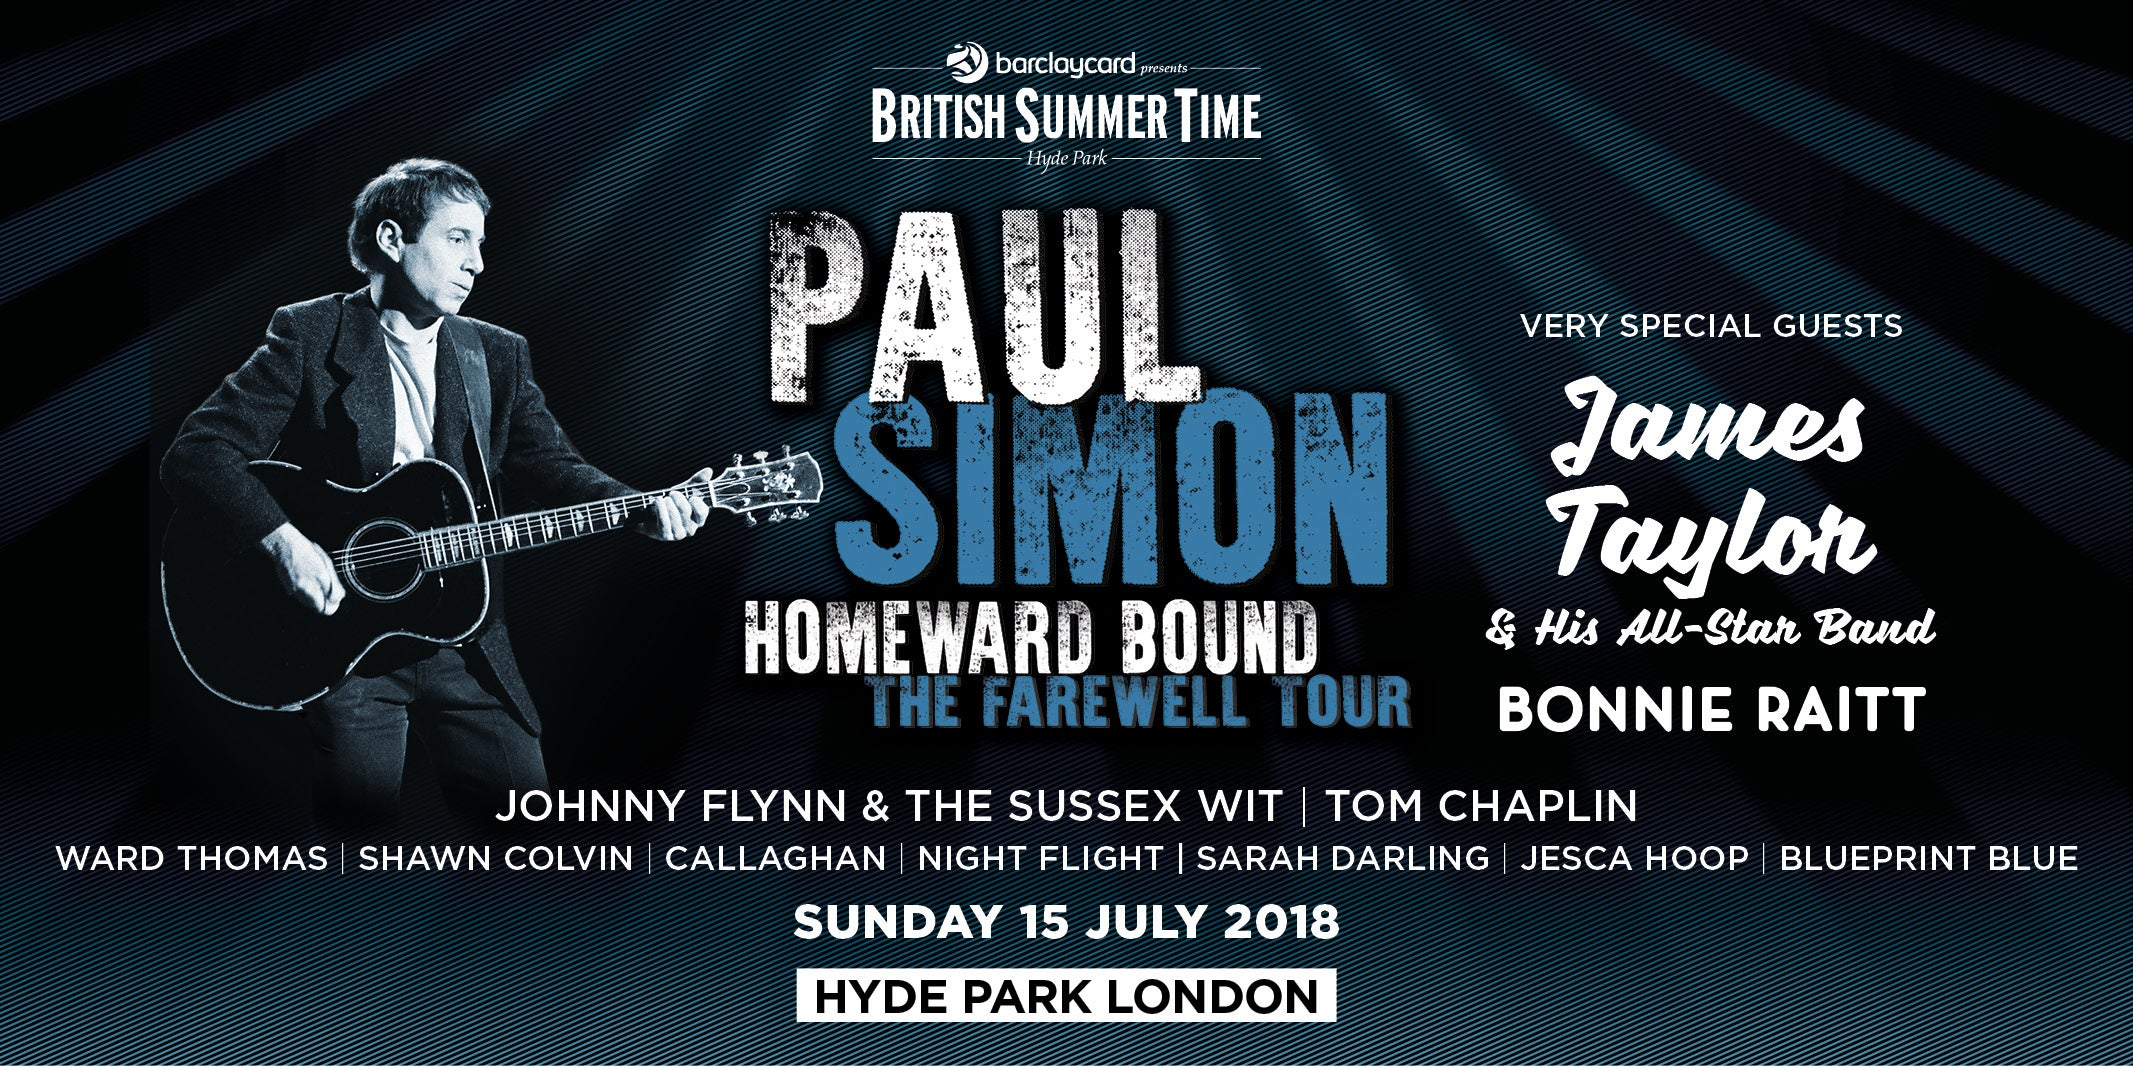 Paul simon barclaycard presents bst hyde park bstps1024x512g malvernweather Images